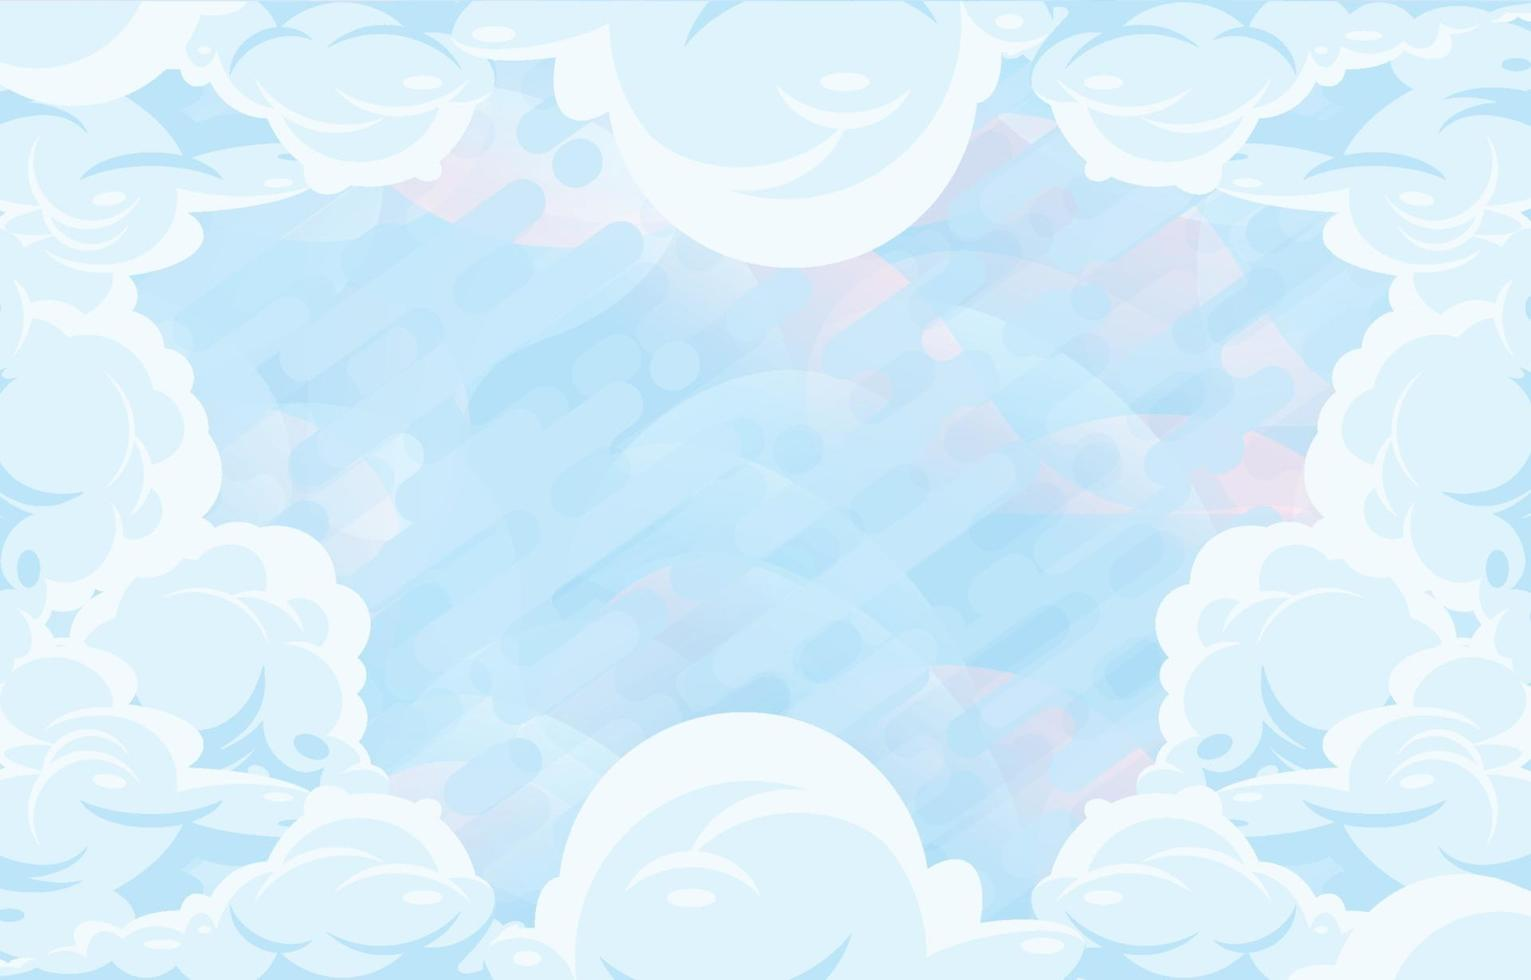 Dynamic Cloudy Background vector